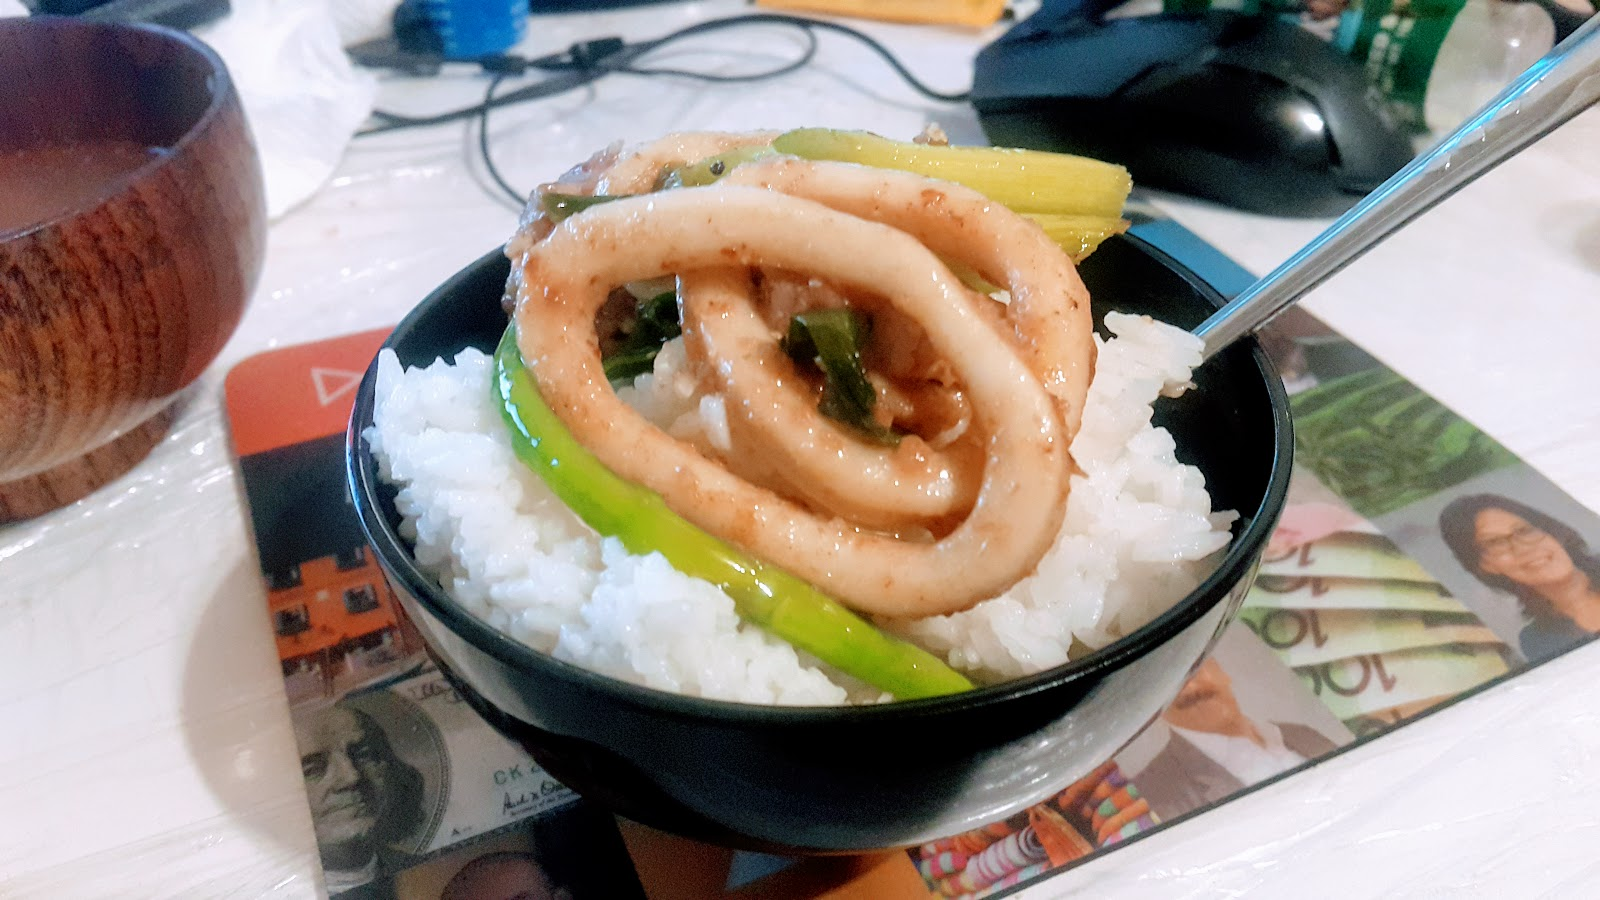 Calamari stir fry asparagus with rice in Japanese cup